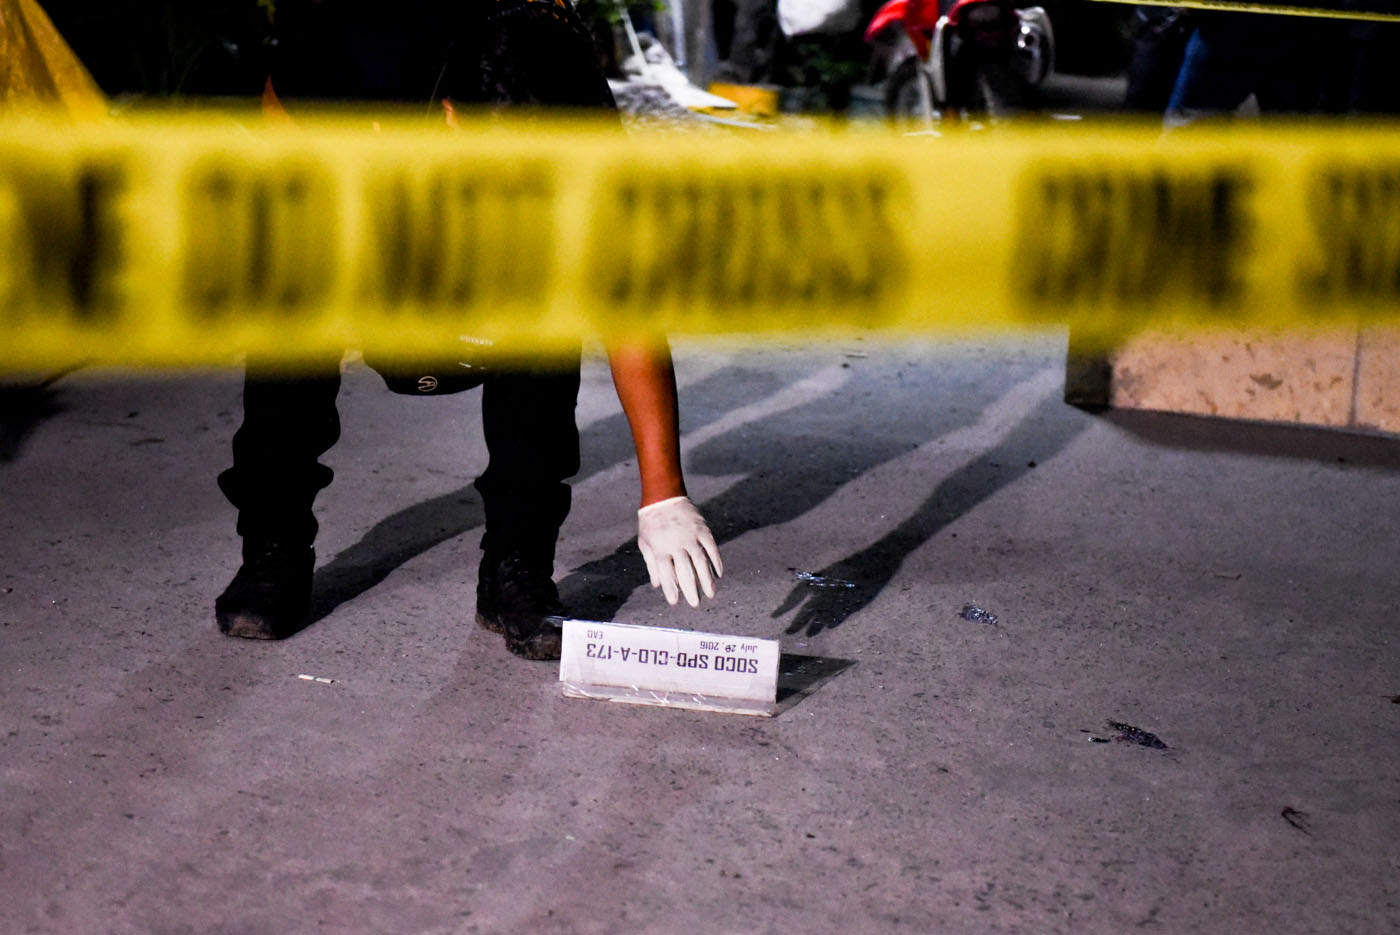 CRIME SCENE. A buy-bust operation in Taguig City on July 28, 2016 ends with deaths. Photo by Alecs Ongcal/Rappler